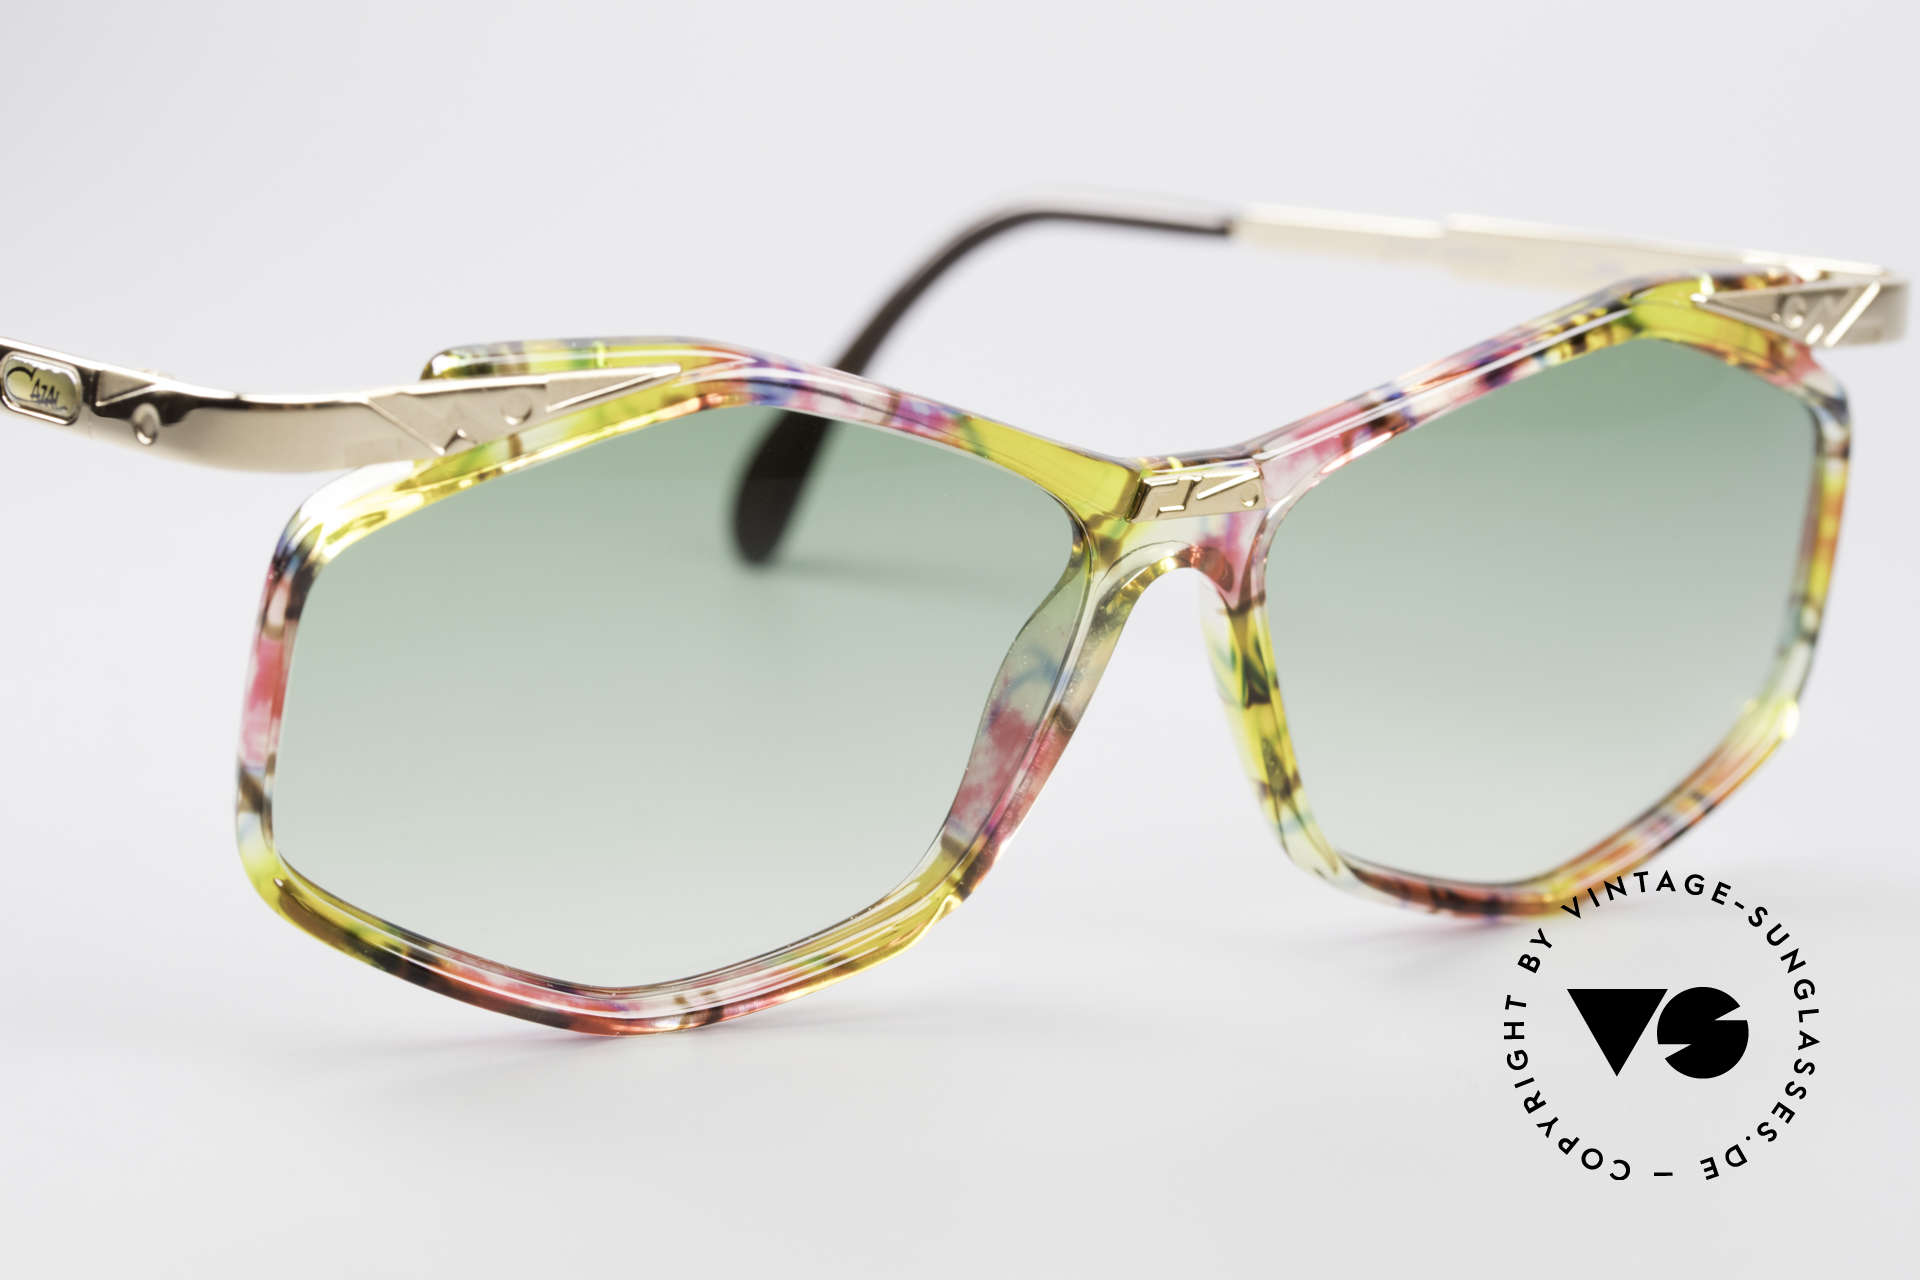 Cazal 354 Vintage 90s Sunglasses Women, NO RETRO sunglasses, but a 25 years old ORIGINAL, Made for Women